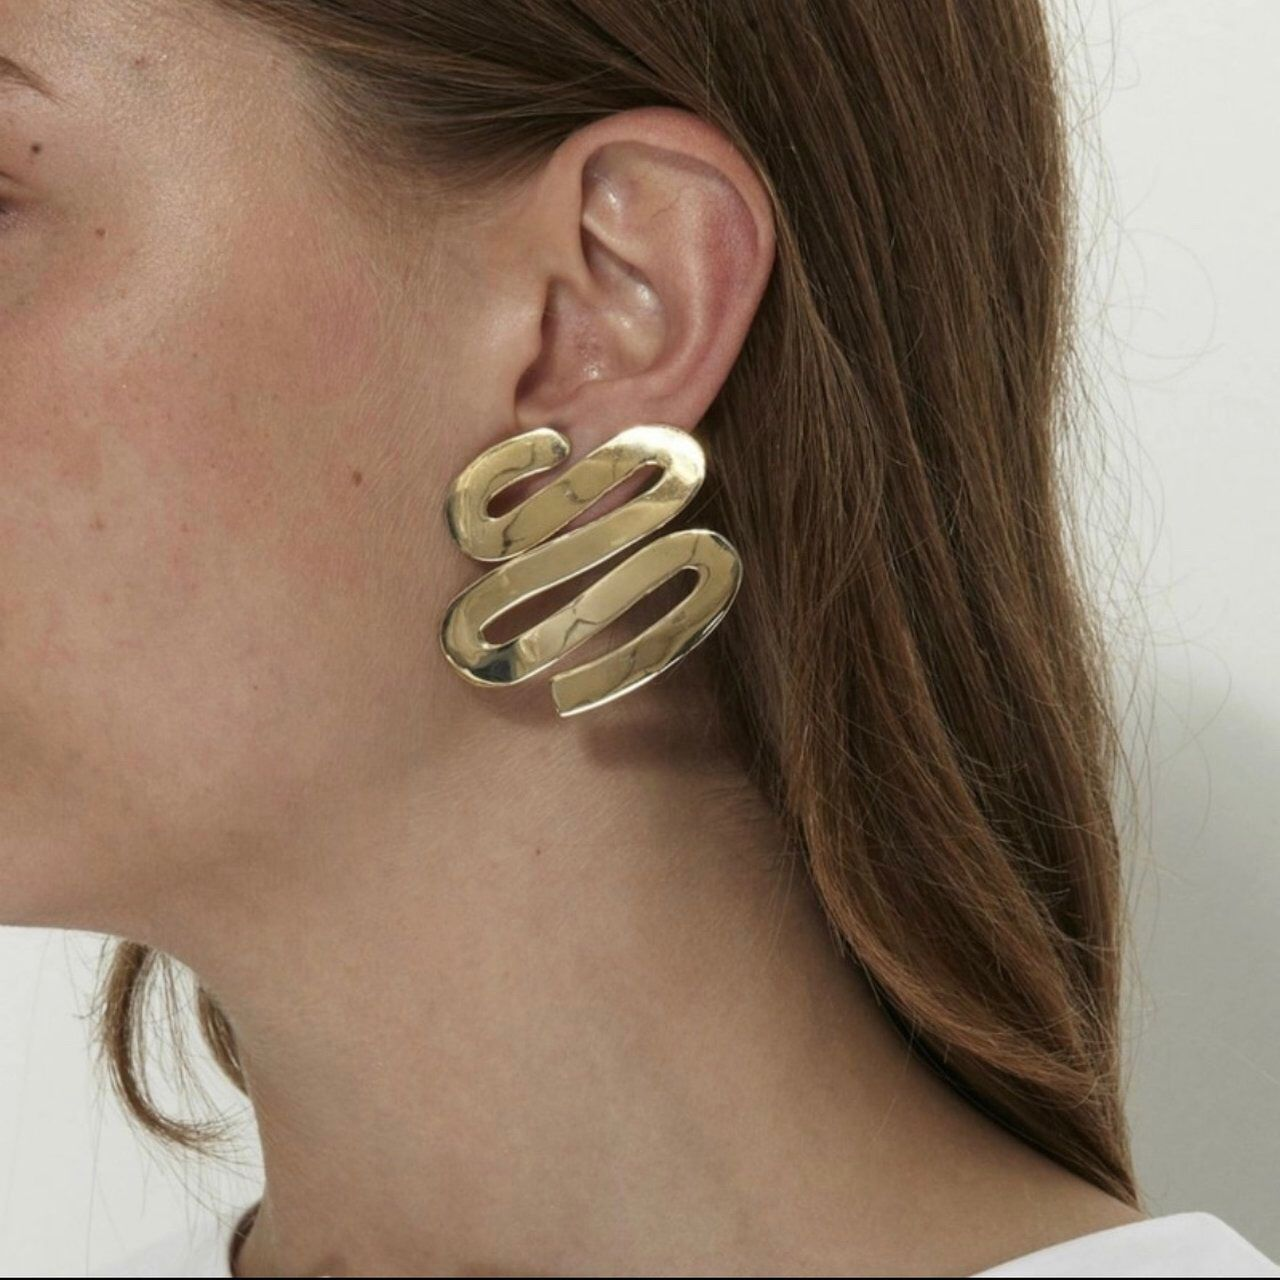 26b0226a701aa Pin by Pilar Tisker on Jewelry in 2019 | Fashion, Women's earrings ...